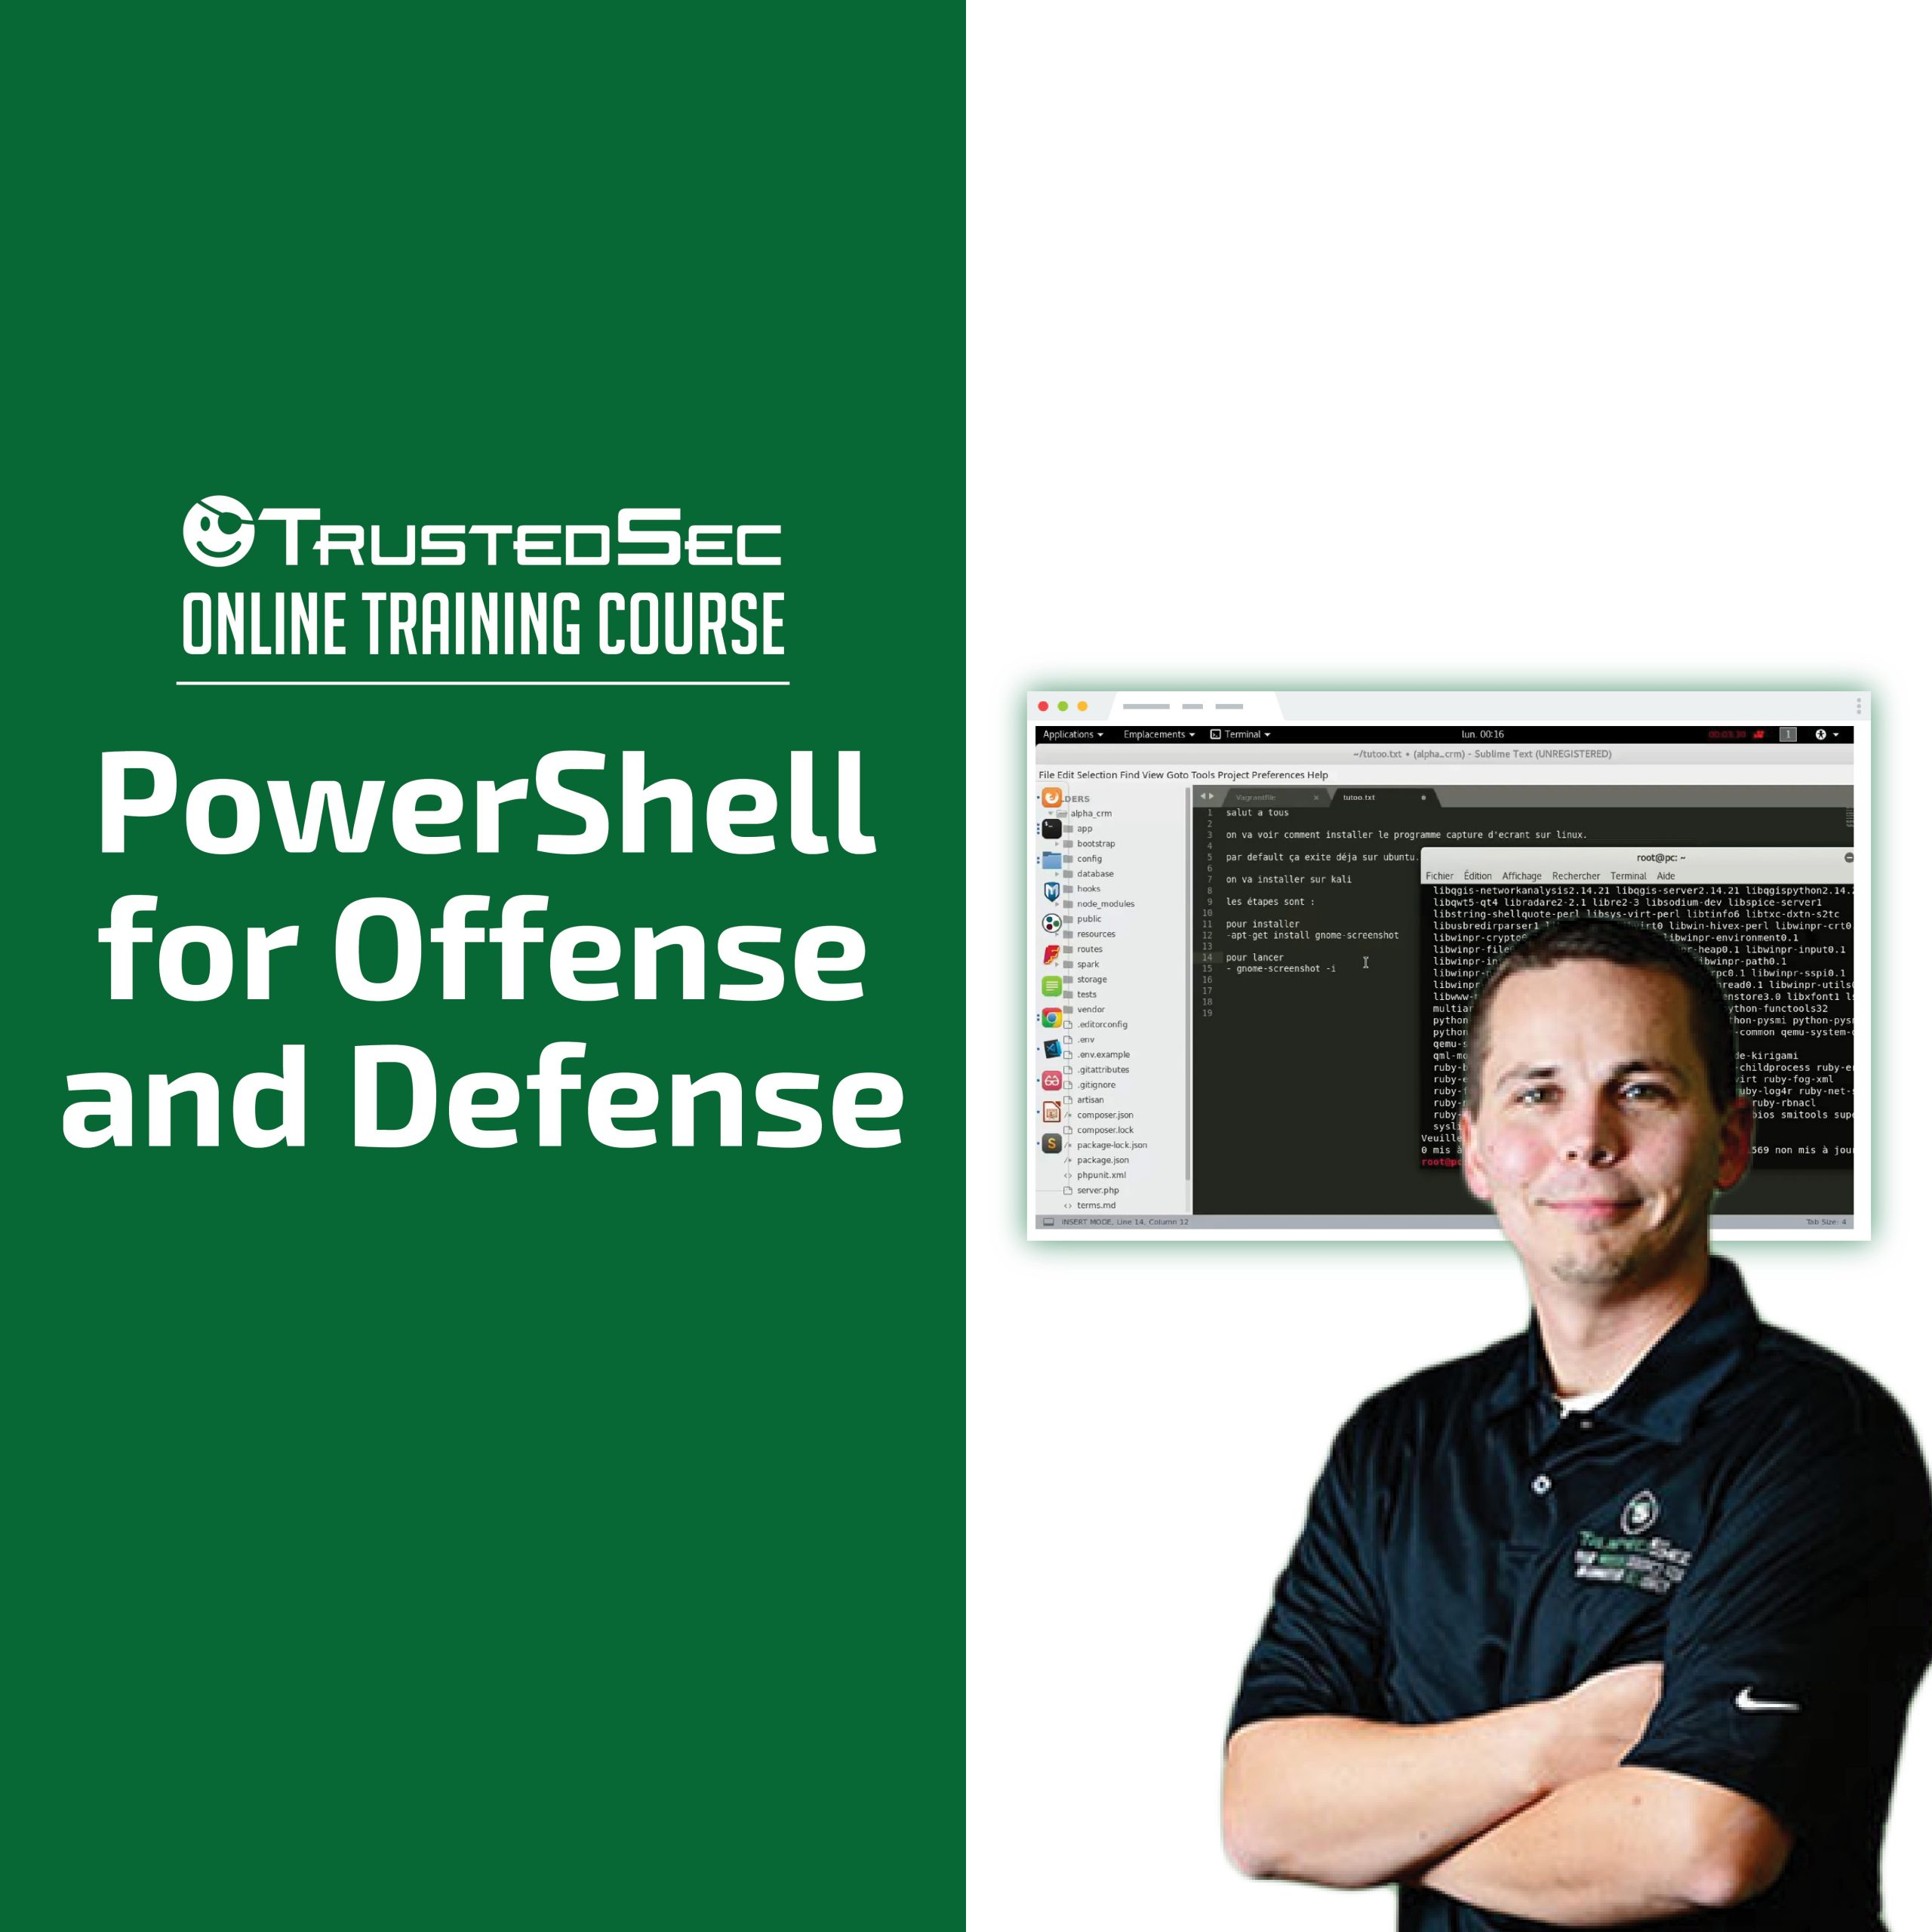 https://www.trustedsec.com/wp-content/uploads/2020/04/040120-Training-Visual-Powershell-Square-scaled.jpg